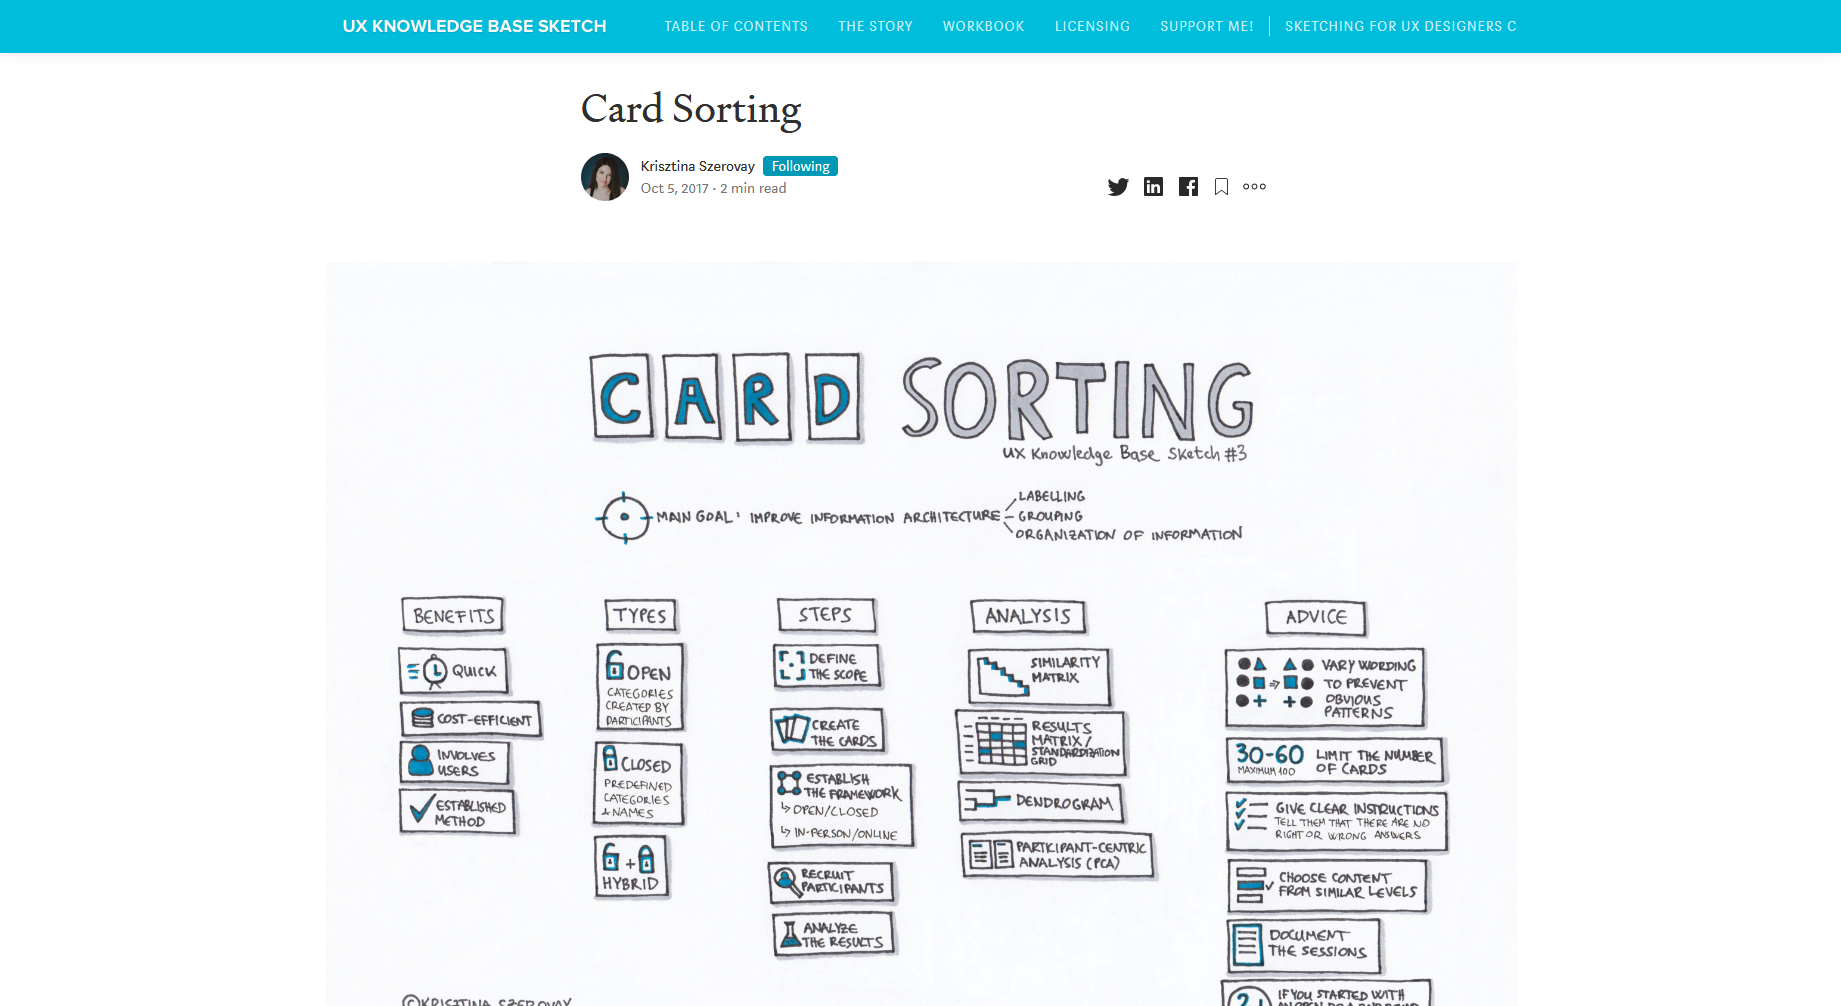 Card Sorting — UX Knowledge Base Sketches